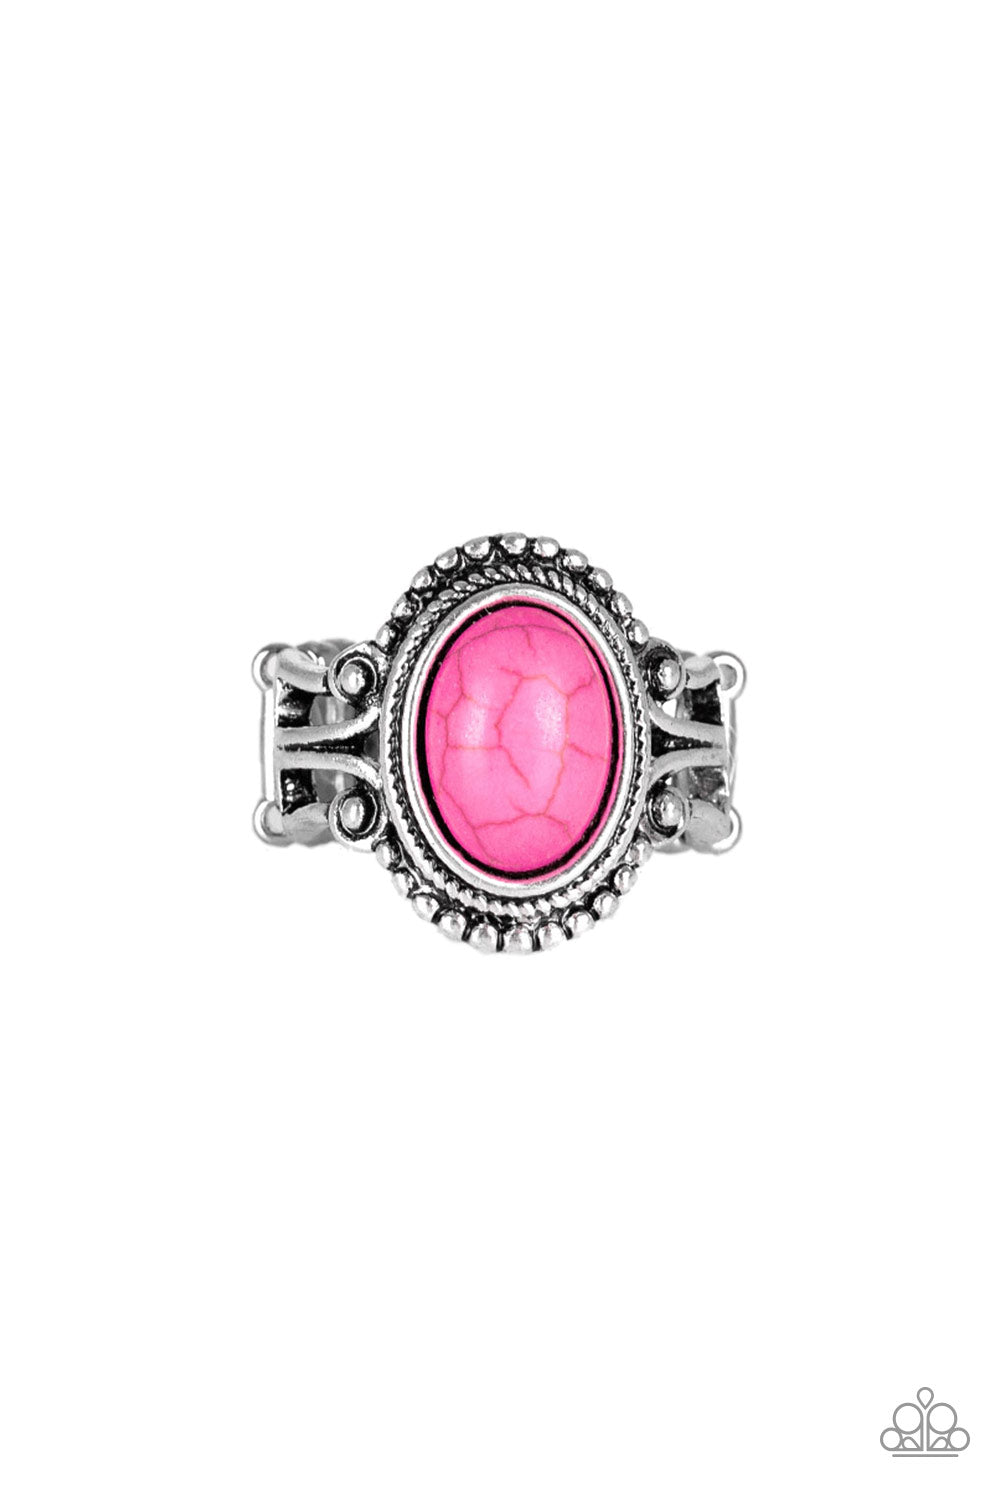 Paparazzi Ring ~ All The Worlds A STAGECOACH - Pink